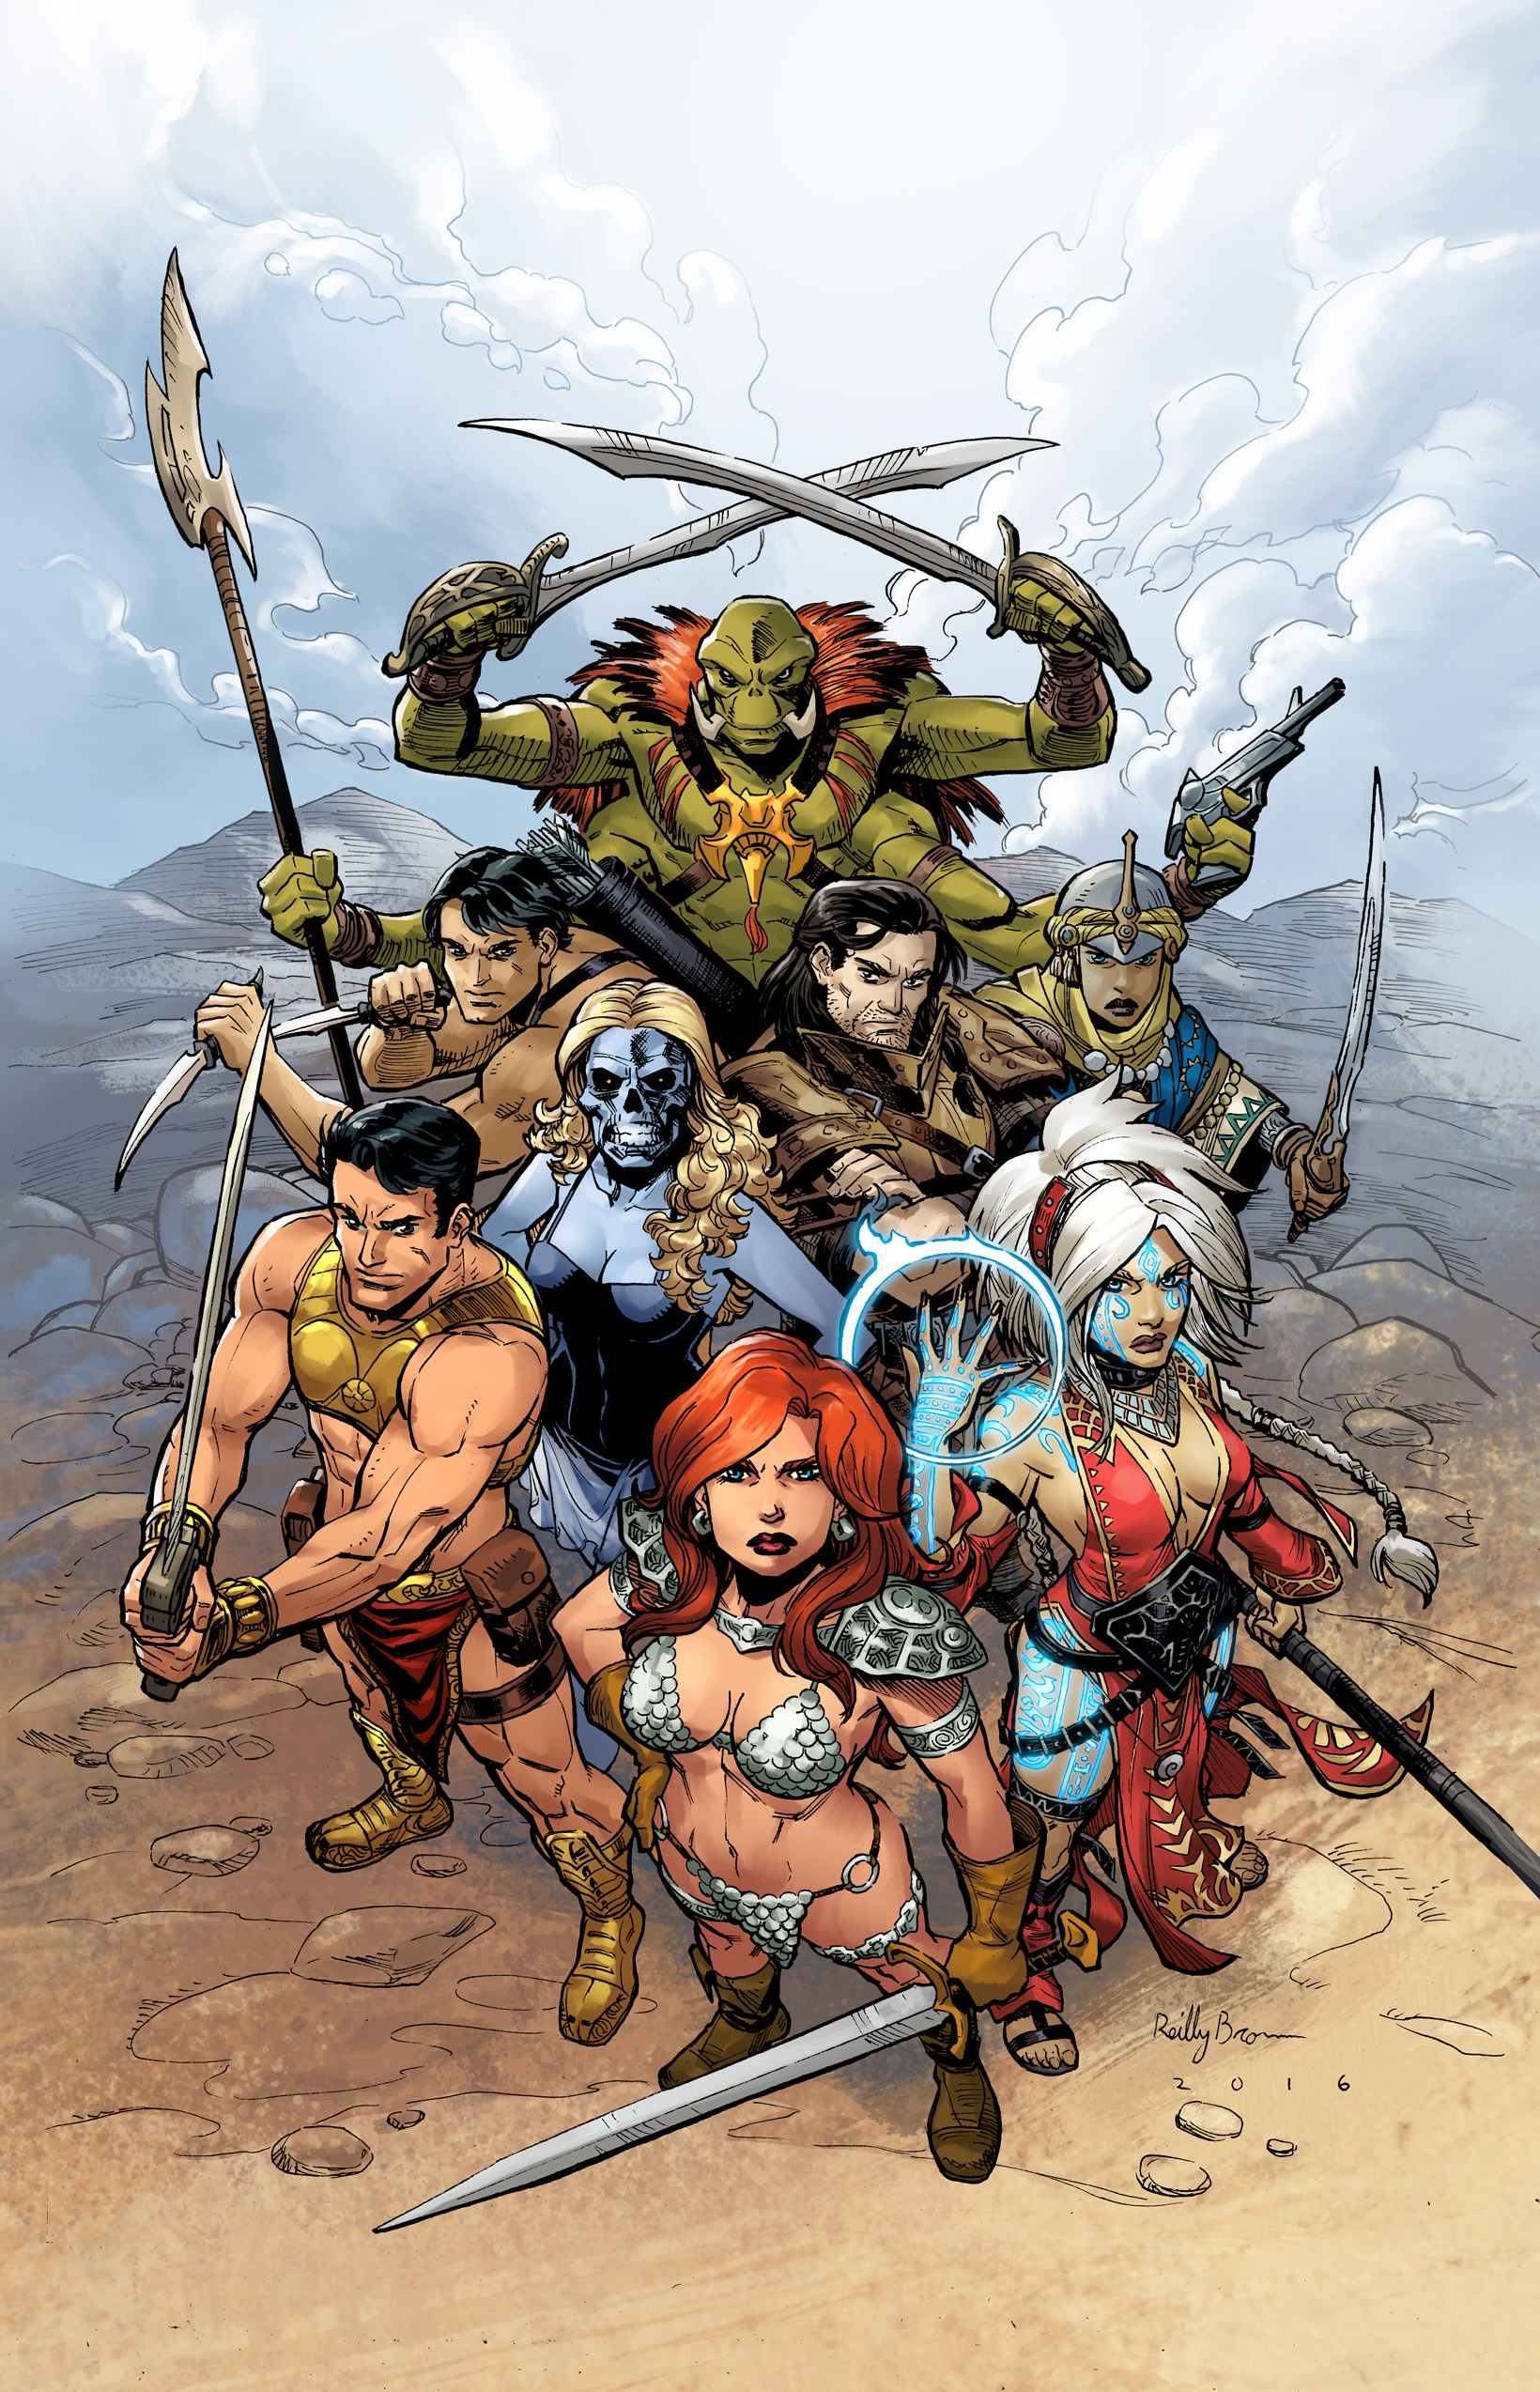 Pathfinder Worldscape #1, cover by Reilly Brown.(C) Dynamite Entertainment.